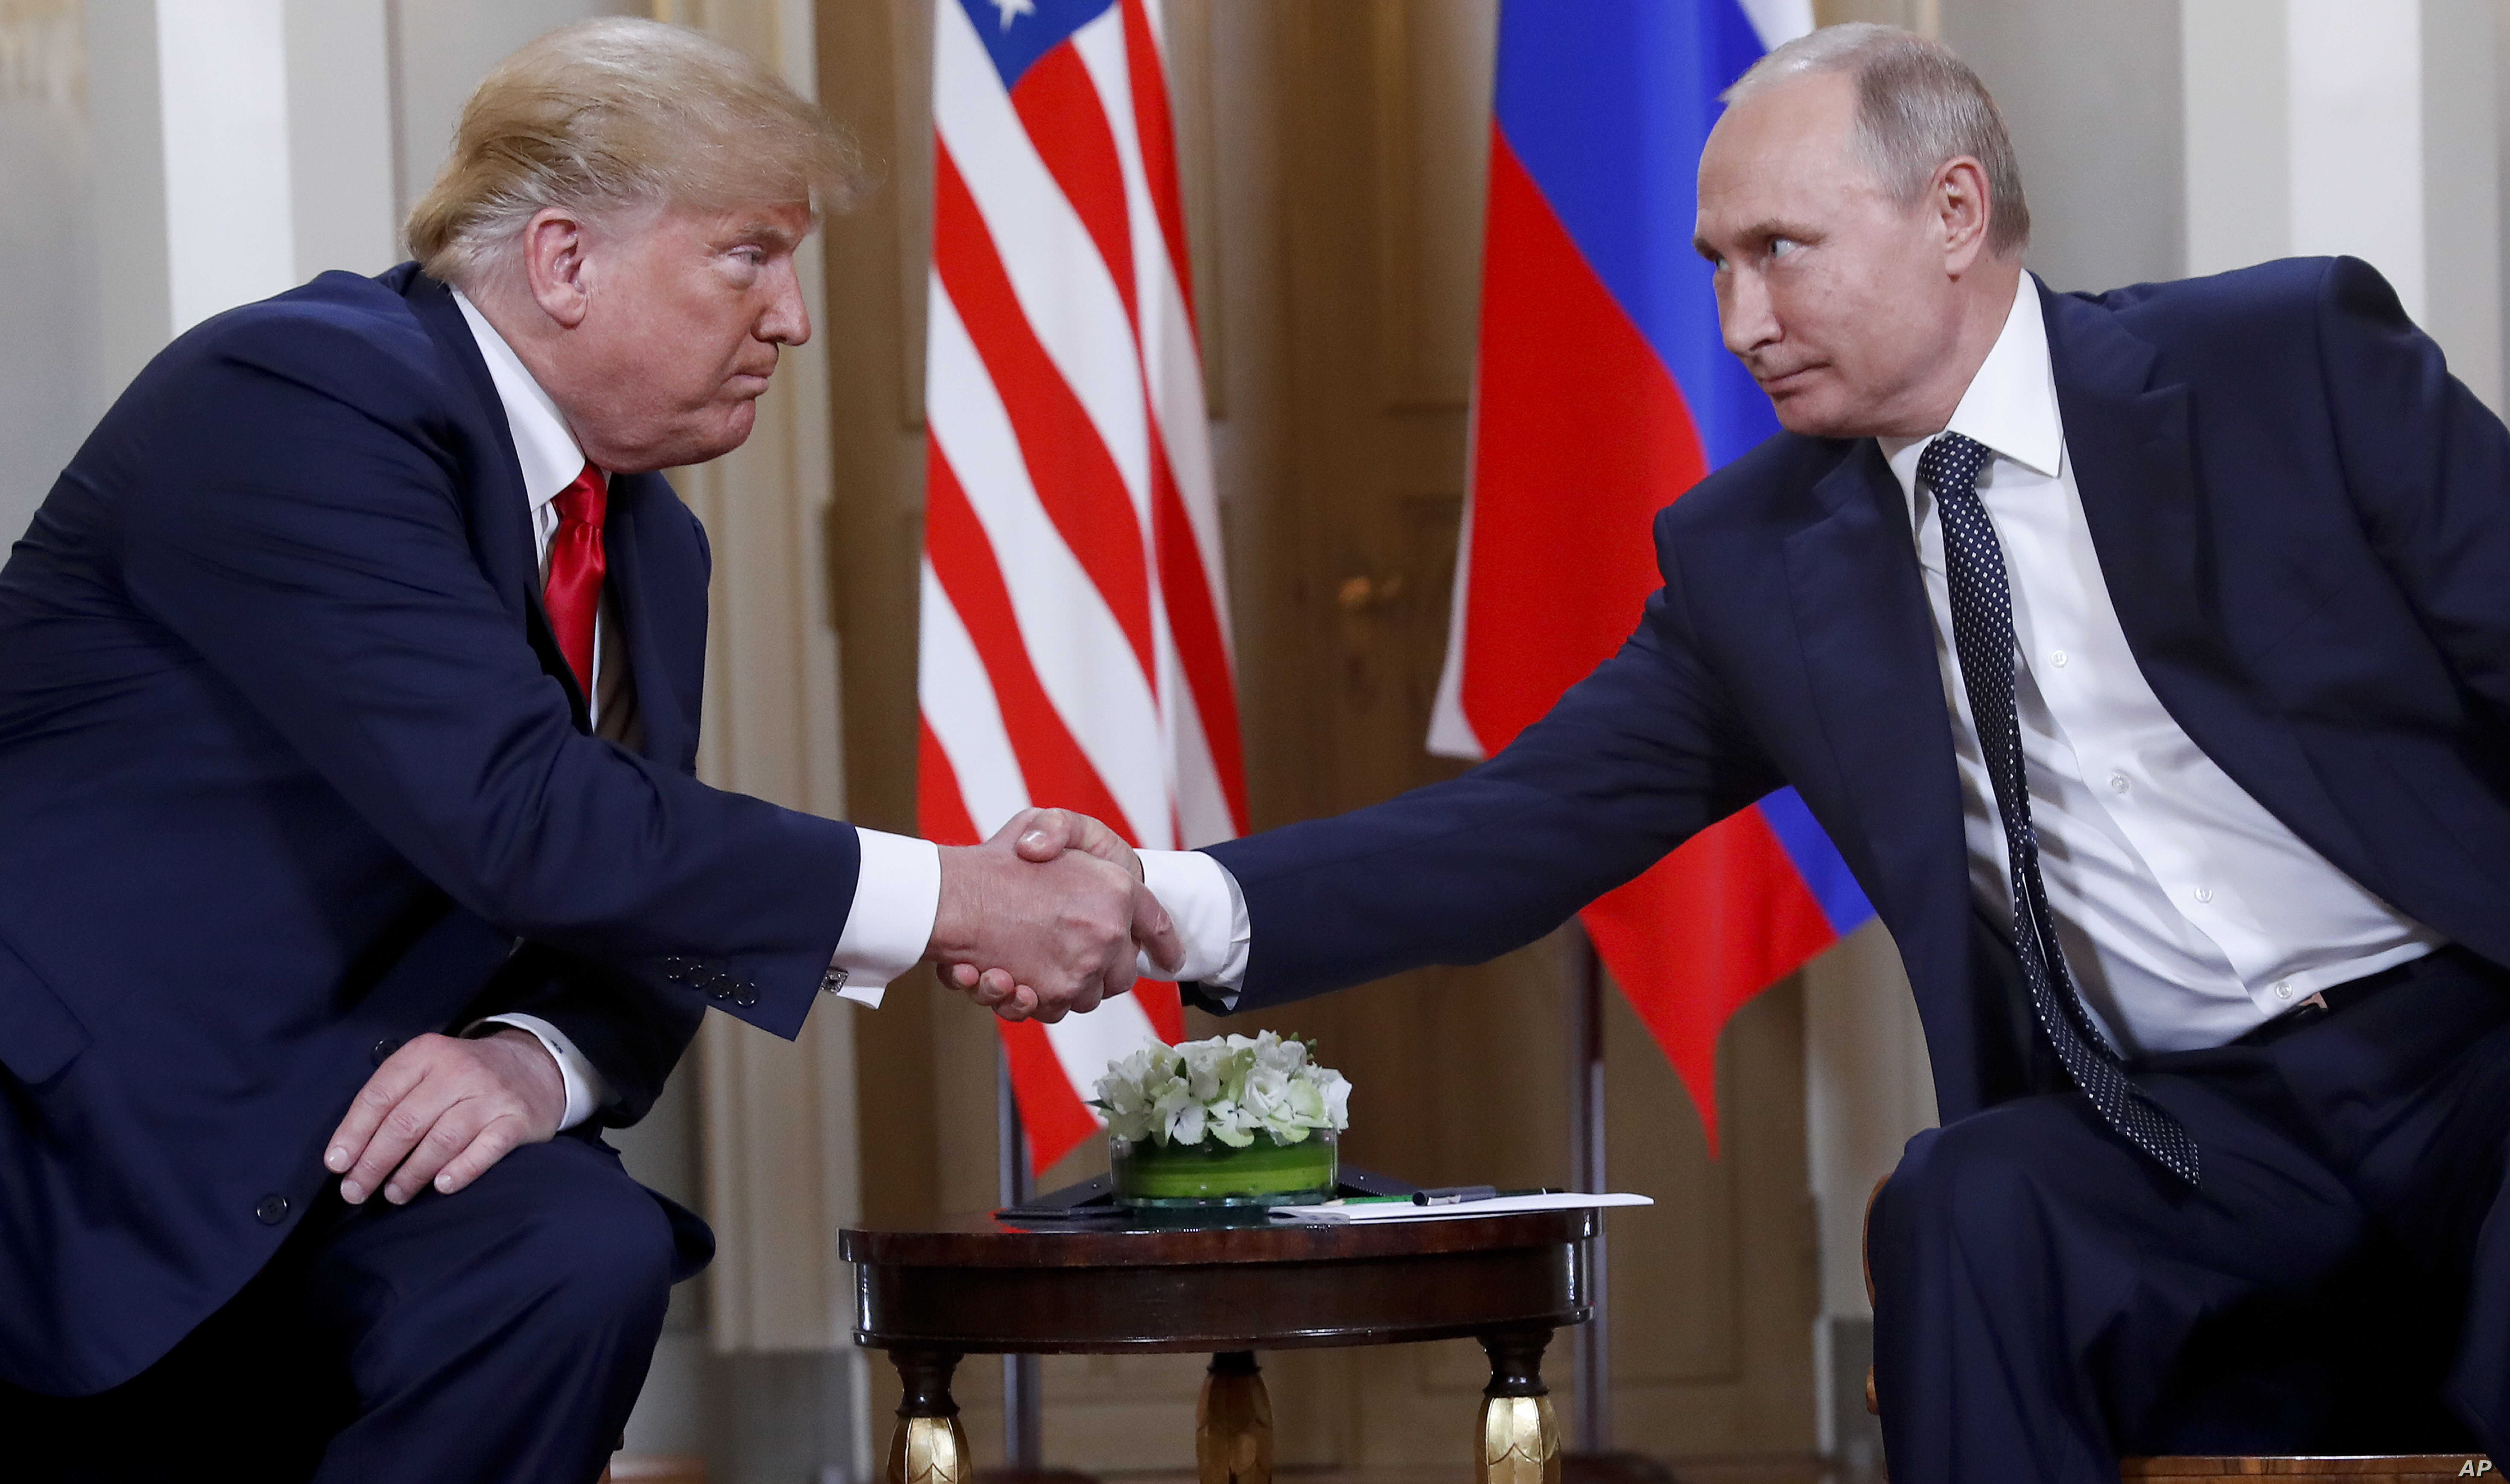 U.S. President Donald Trump, left, and Russian President Vladimir Putin, right, shake hand at the beginning of a meeting at the Presidential Palace in Helsinki, Finland, July 16, 2018.